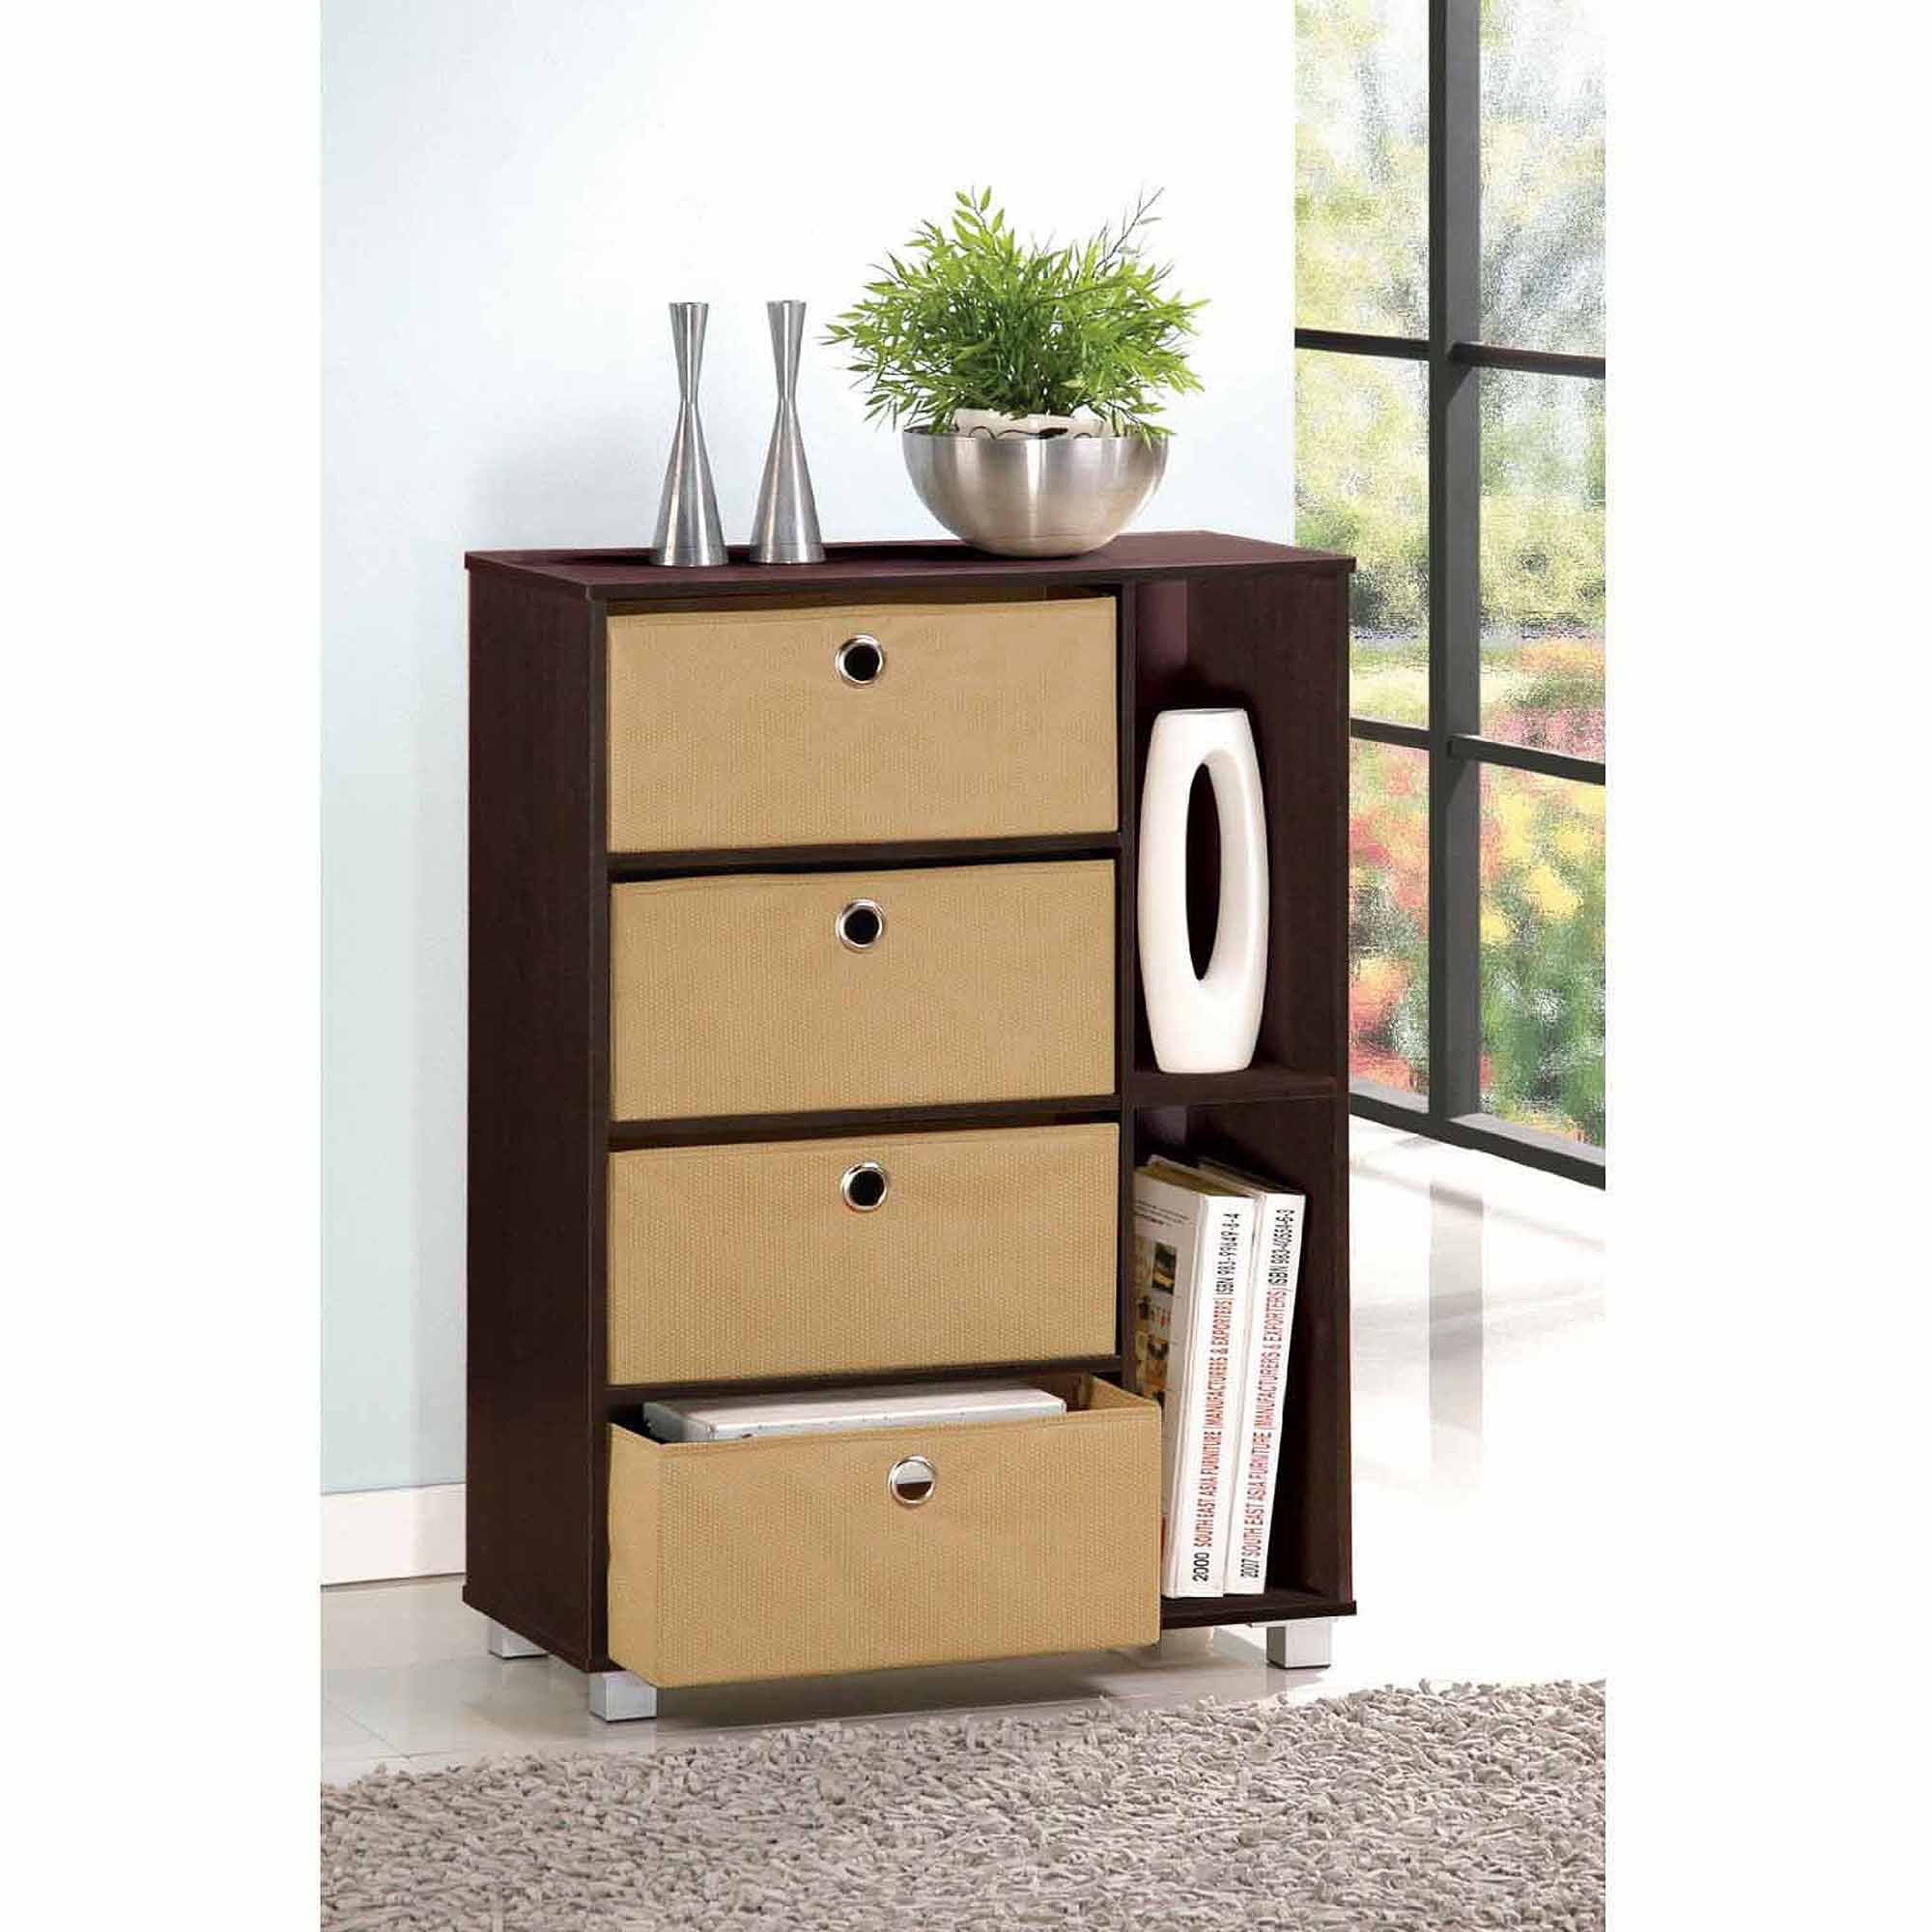 Image is loading Furinno-11159-Multipurpose-Storage-Cabinet-with-4-Bin-  sc 1 st  eBay & Furinno 11159 Multipurpose Storage Cabinet with 4 Bin Drawers | eBay